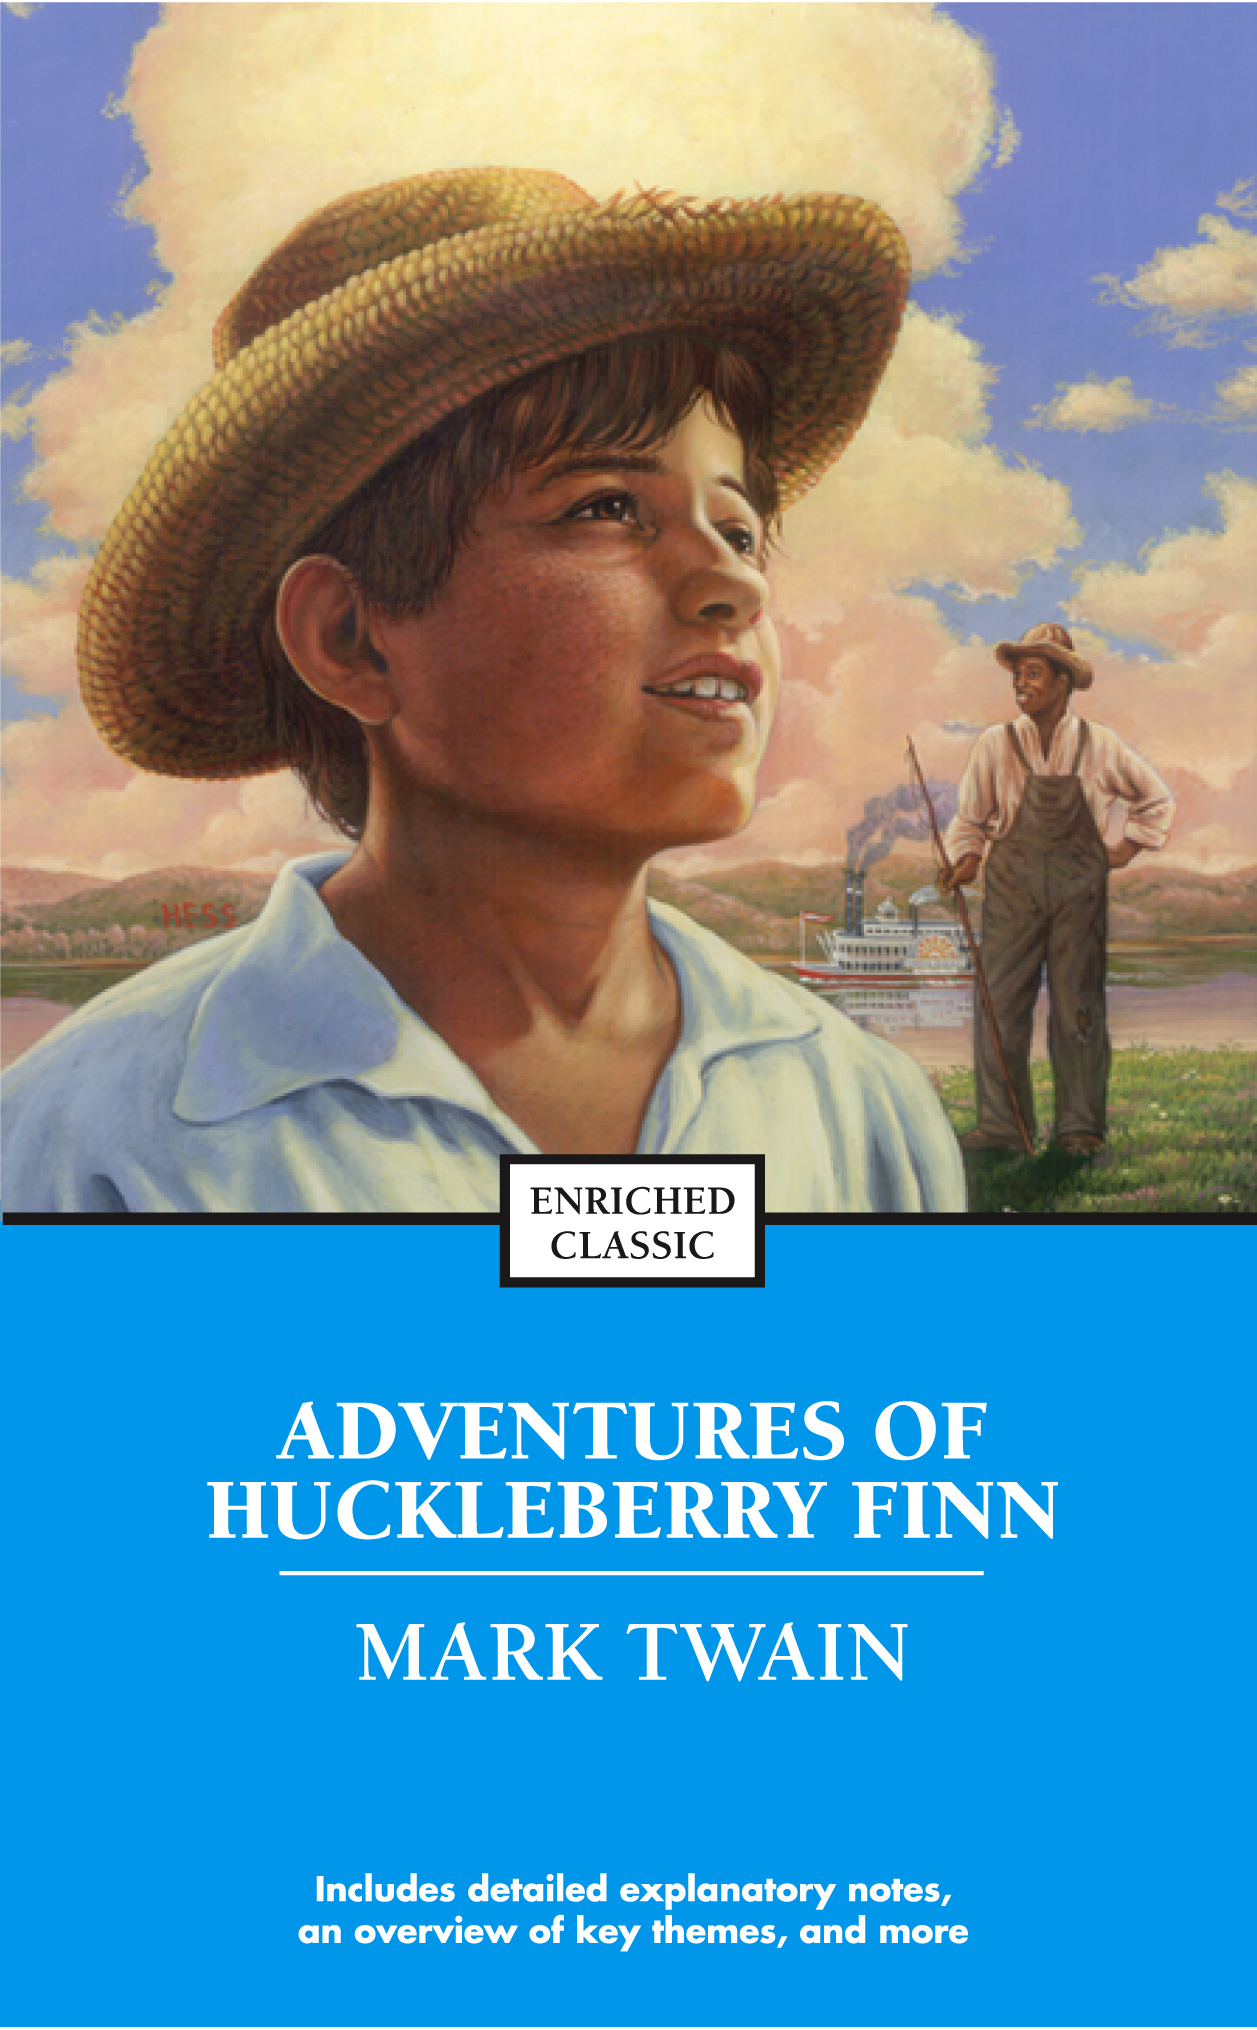 an examination of the adventures of huckleberry finn novel by mark twain Struggling with the themes of mark twain's adventures of huckleberry finn we've got the quick and easy lowdown on them here.